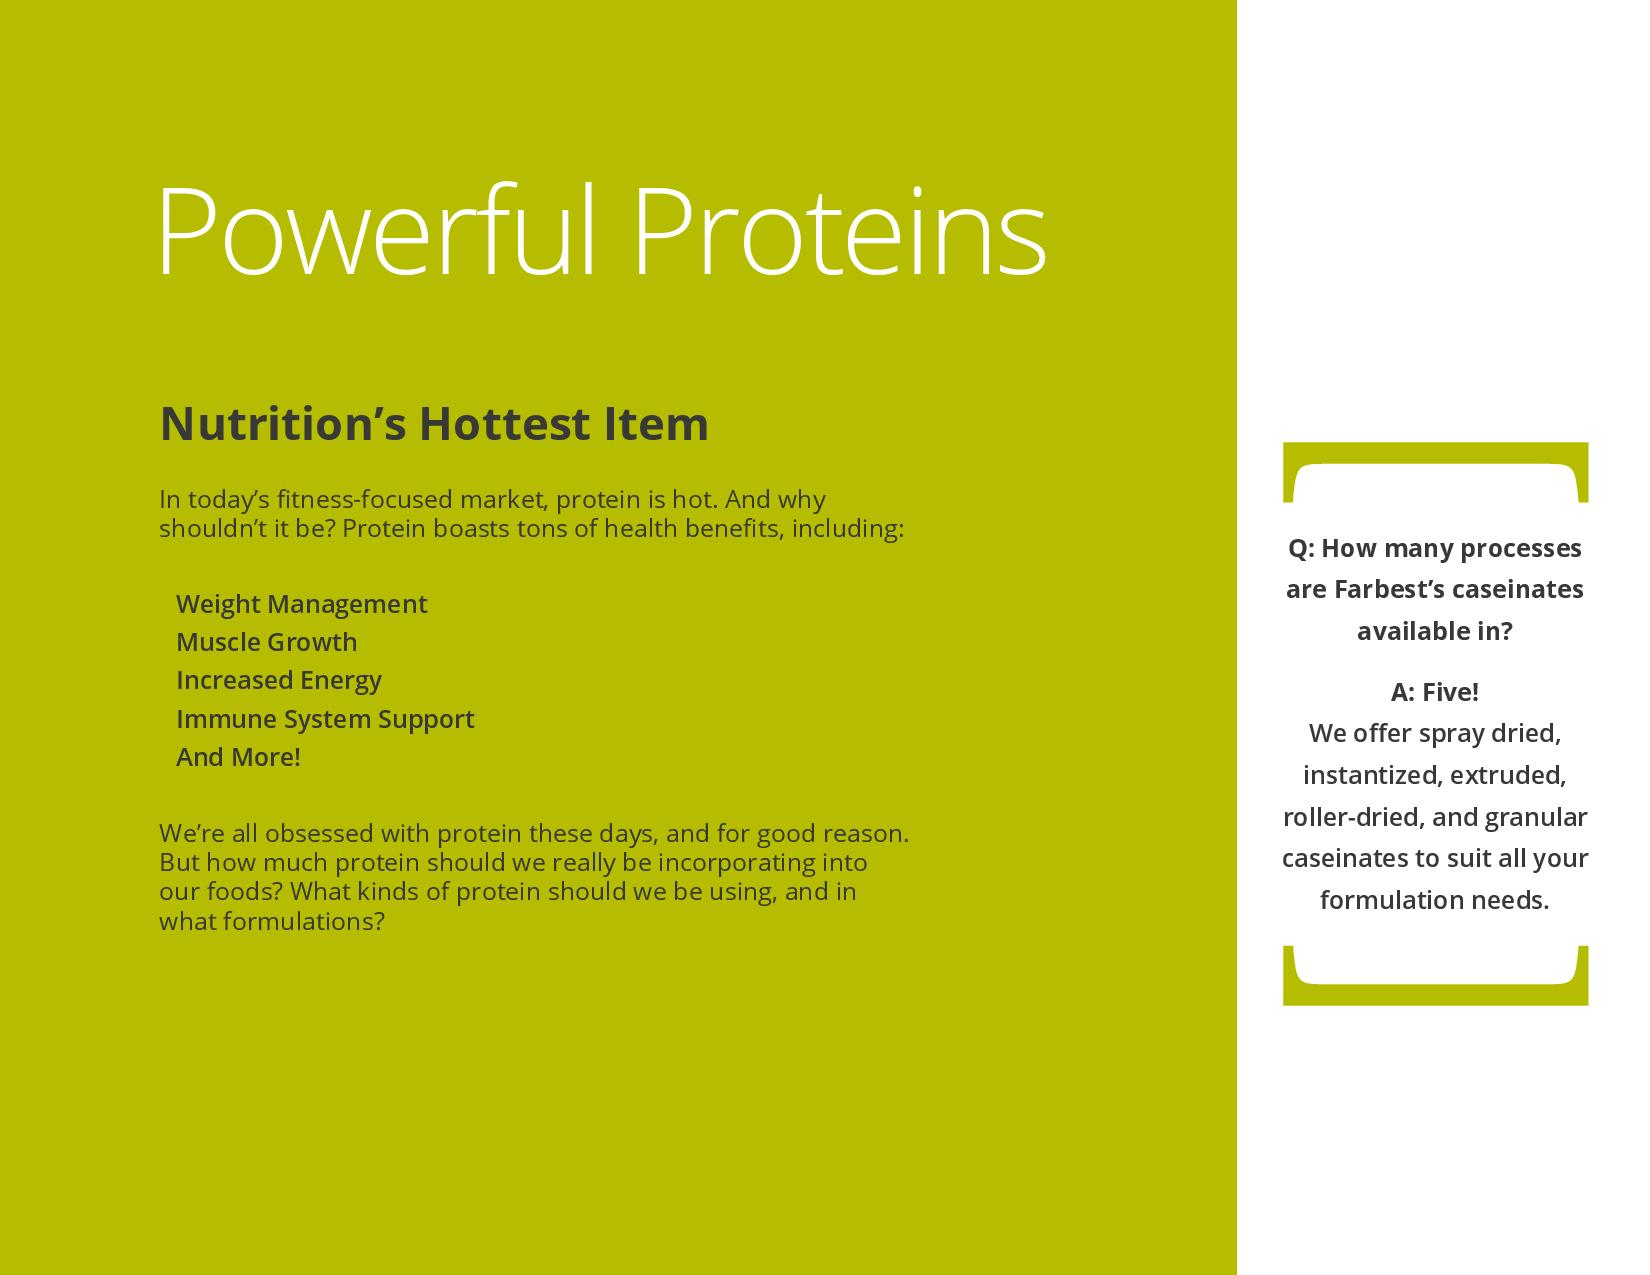 Farbest Proteins White Paper-page-003.jpg